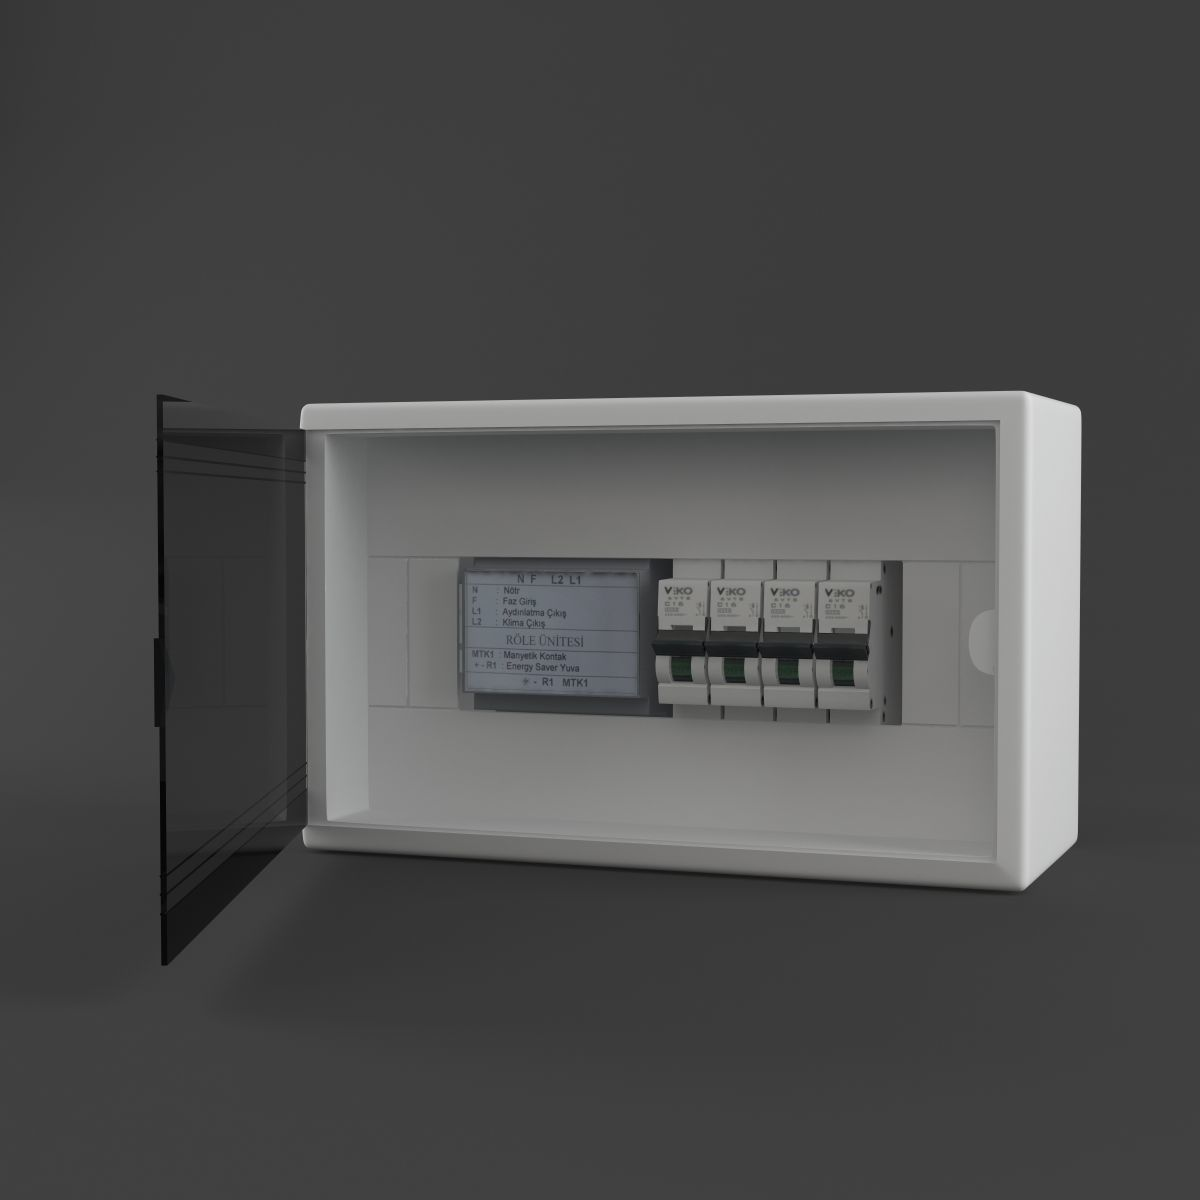 fuse box 3d model low poly animated max obj 3ds fbx 3d asset fuse box cgtrader